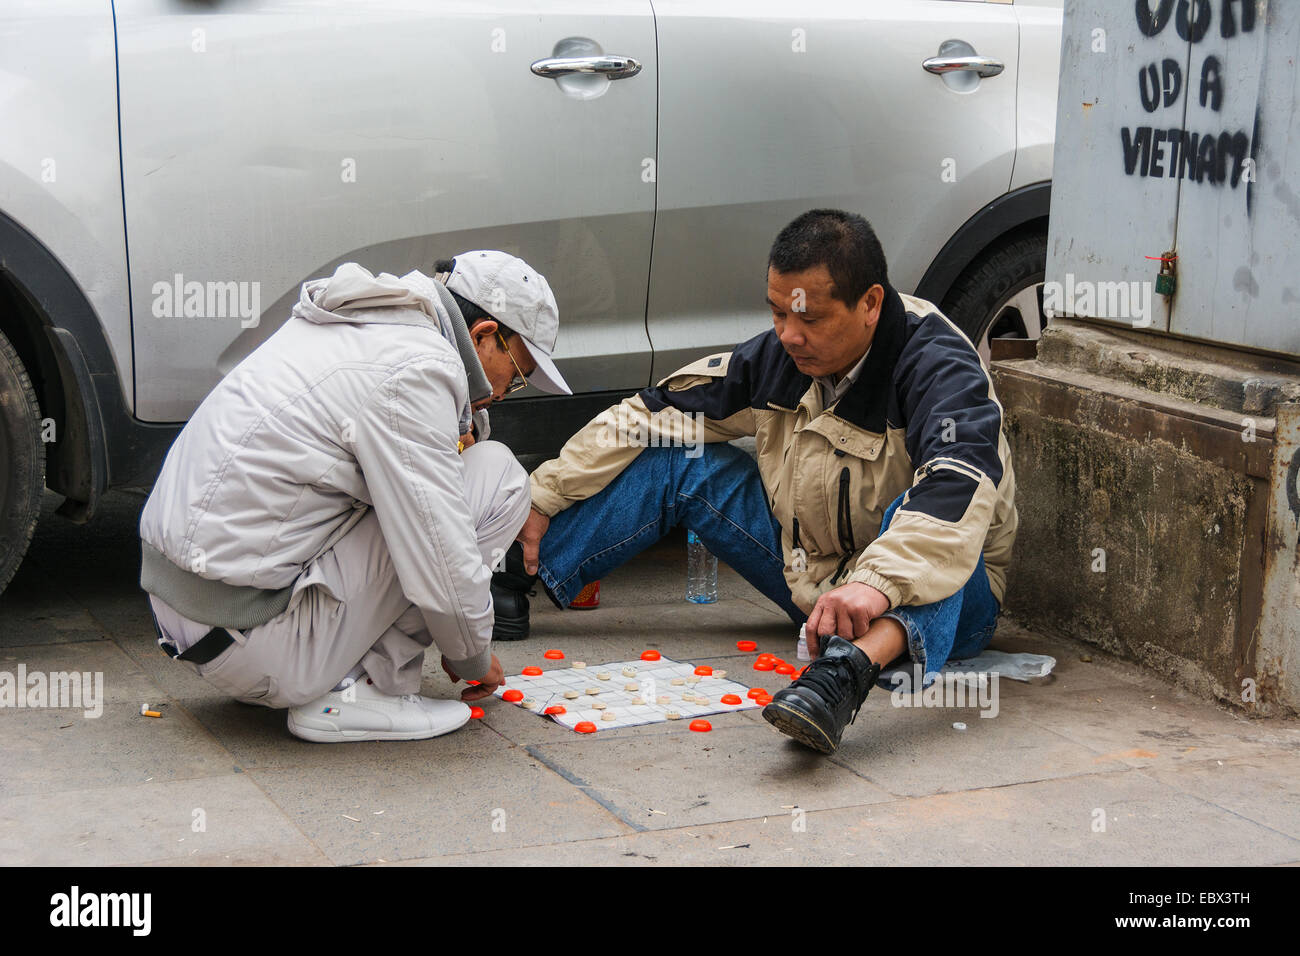 Two Vietnamese men playing checkers in the street in Hanoi Stock Photo